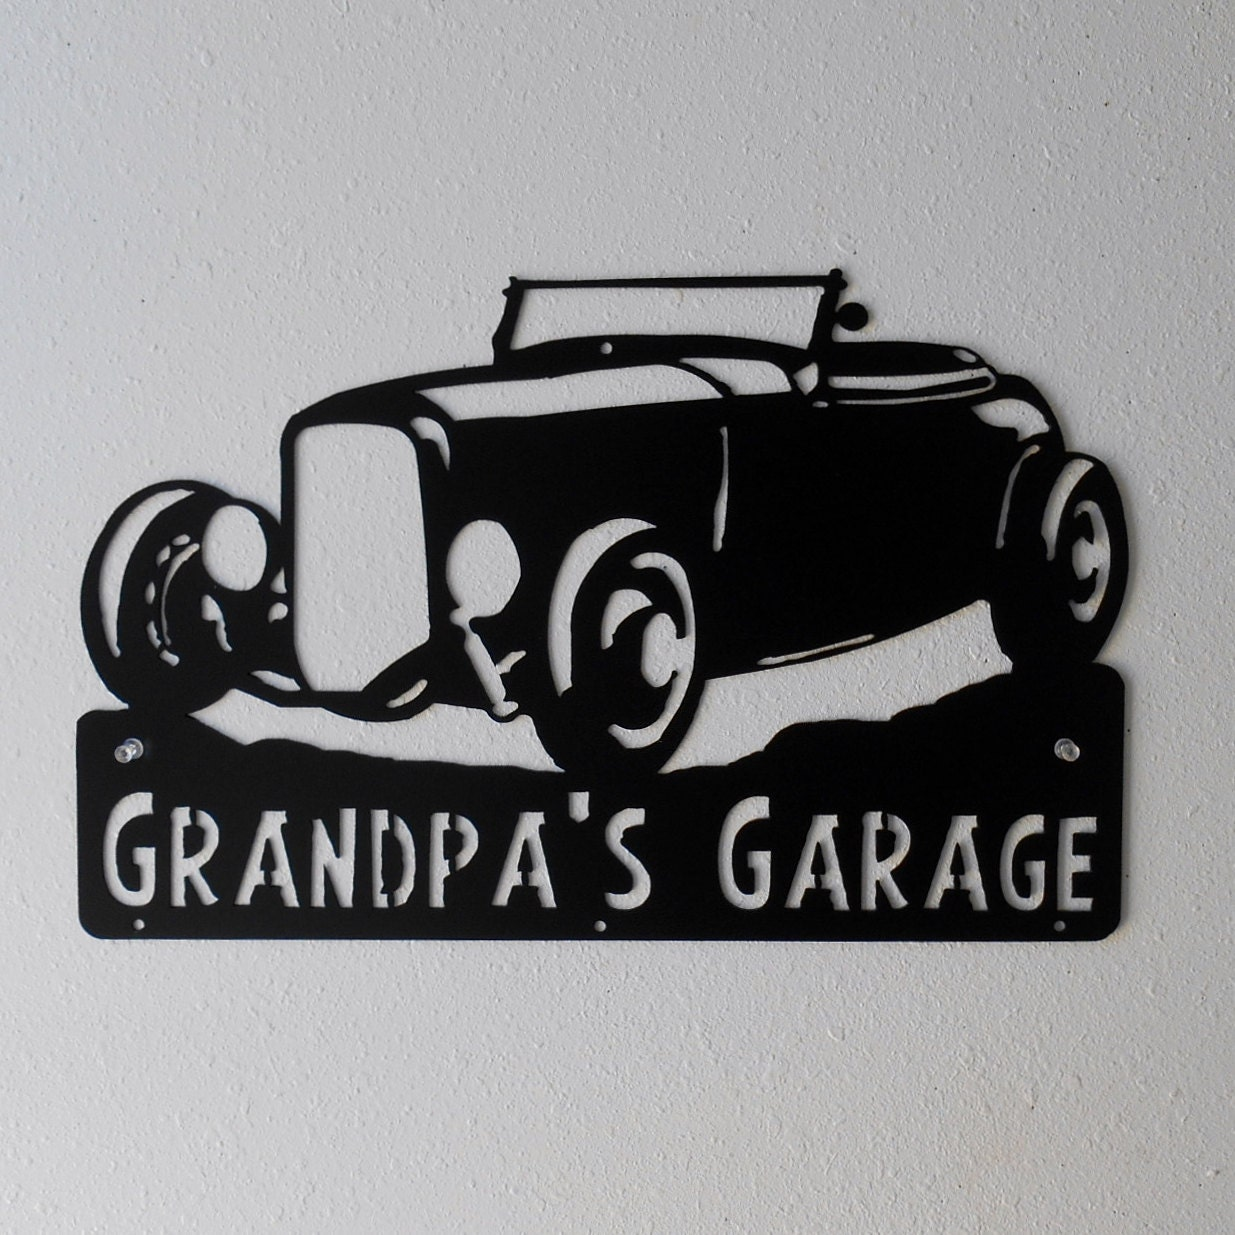 signs oldbarristersdrinkingsociety wood garage attorney sign and gift personalized lawyer drinking society old barristers